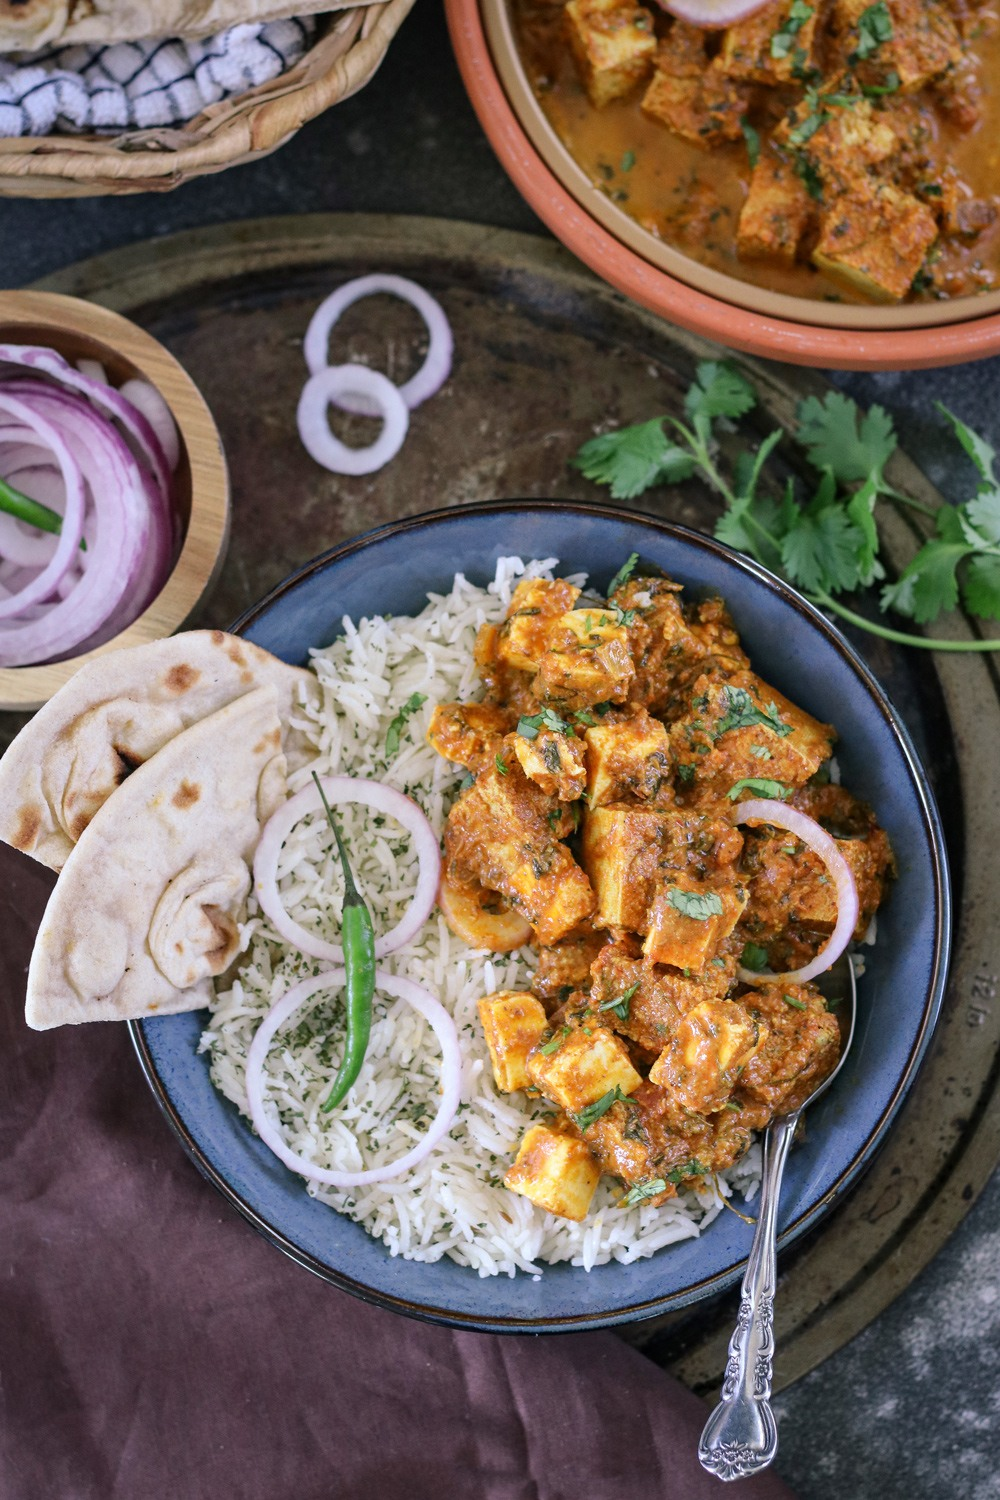 Creamy paneer with rice